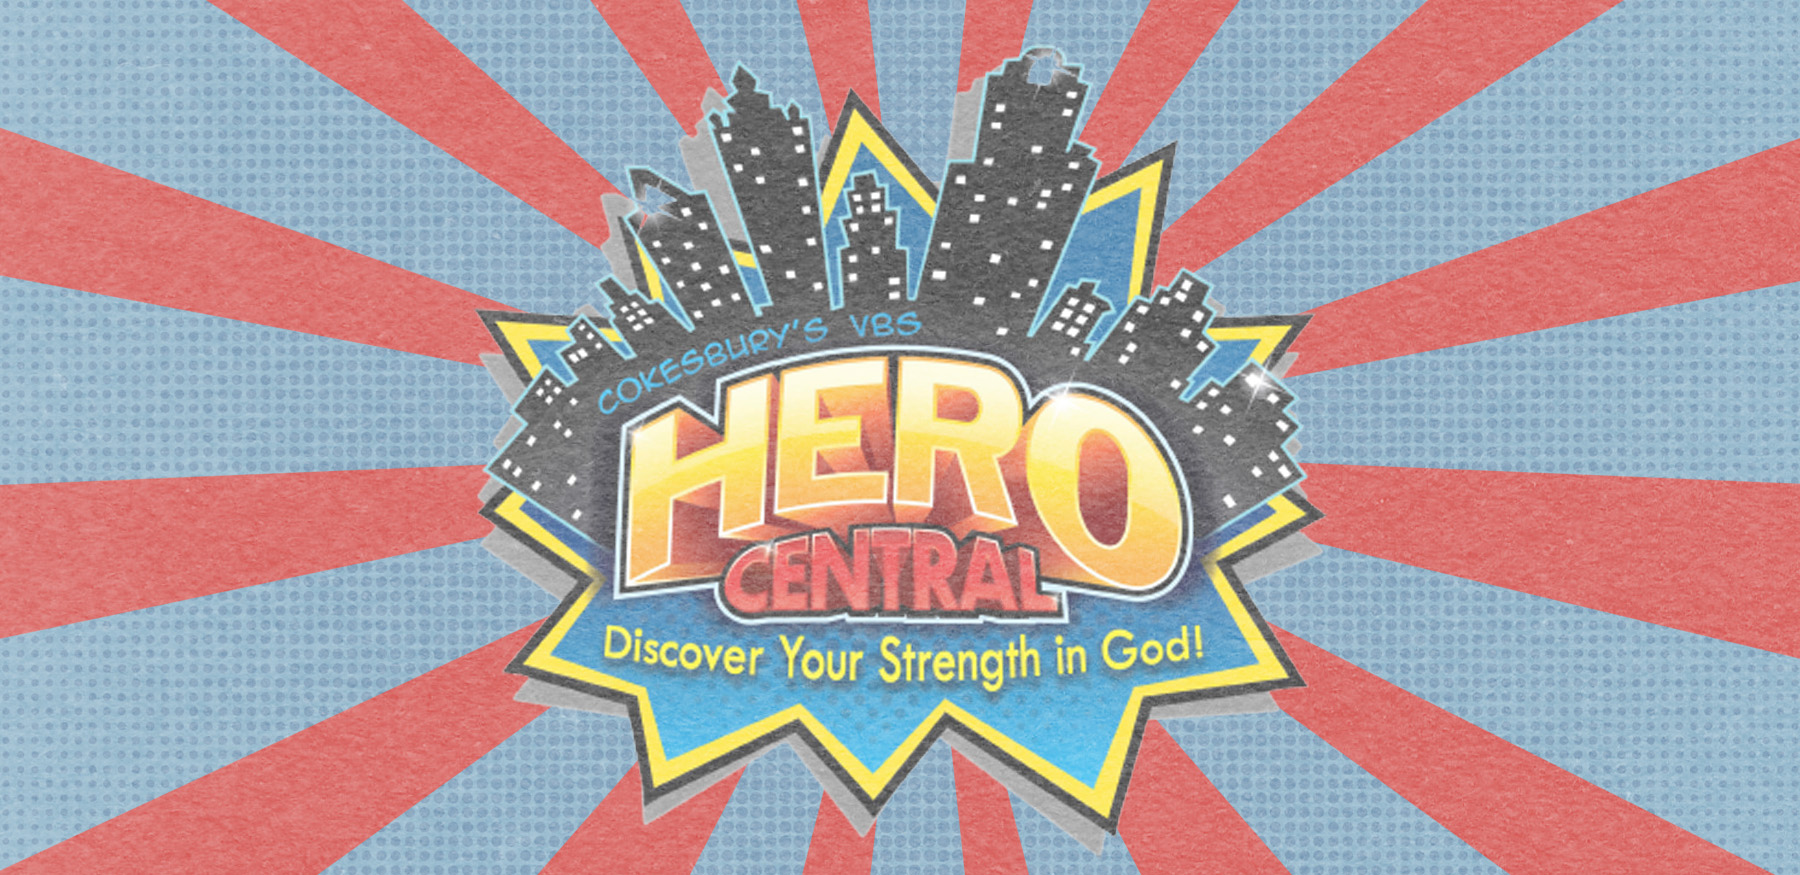 VBS 2017: Hero Central